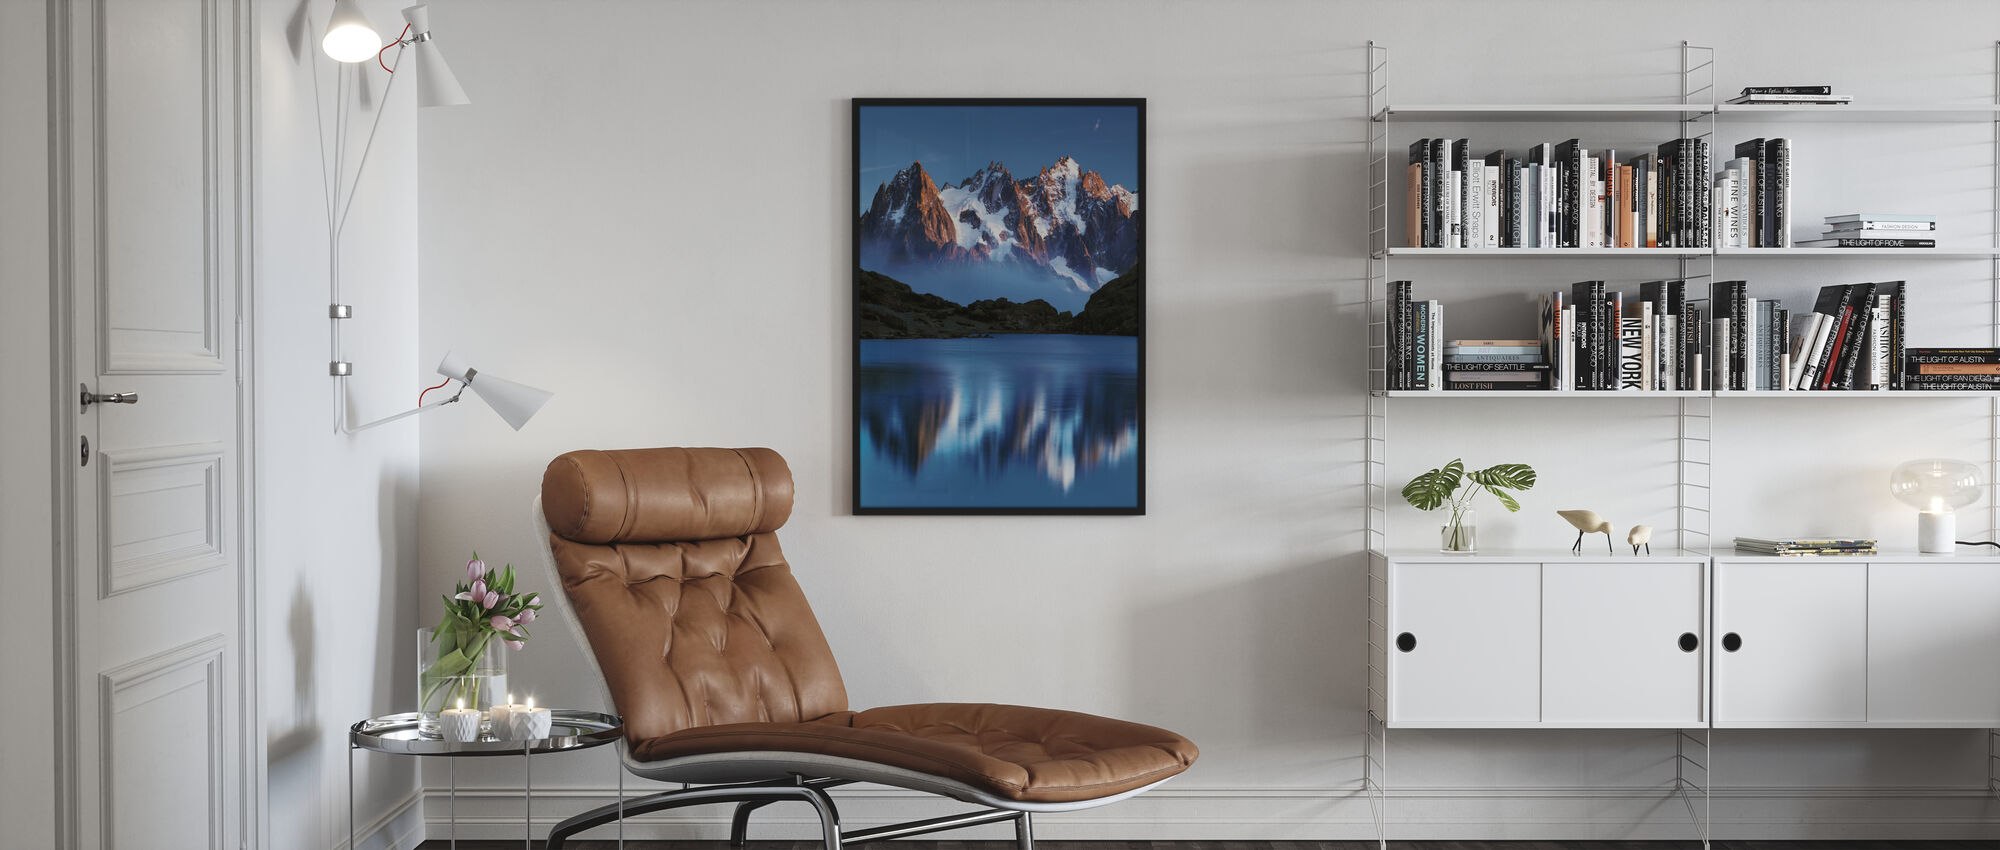 Blue Mountain Mirror - Poster - Living Room